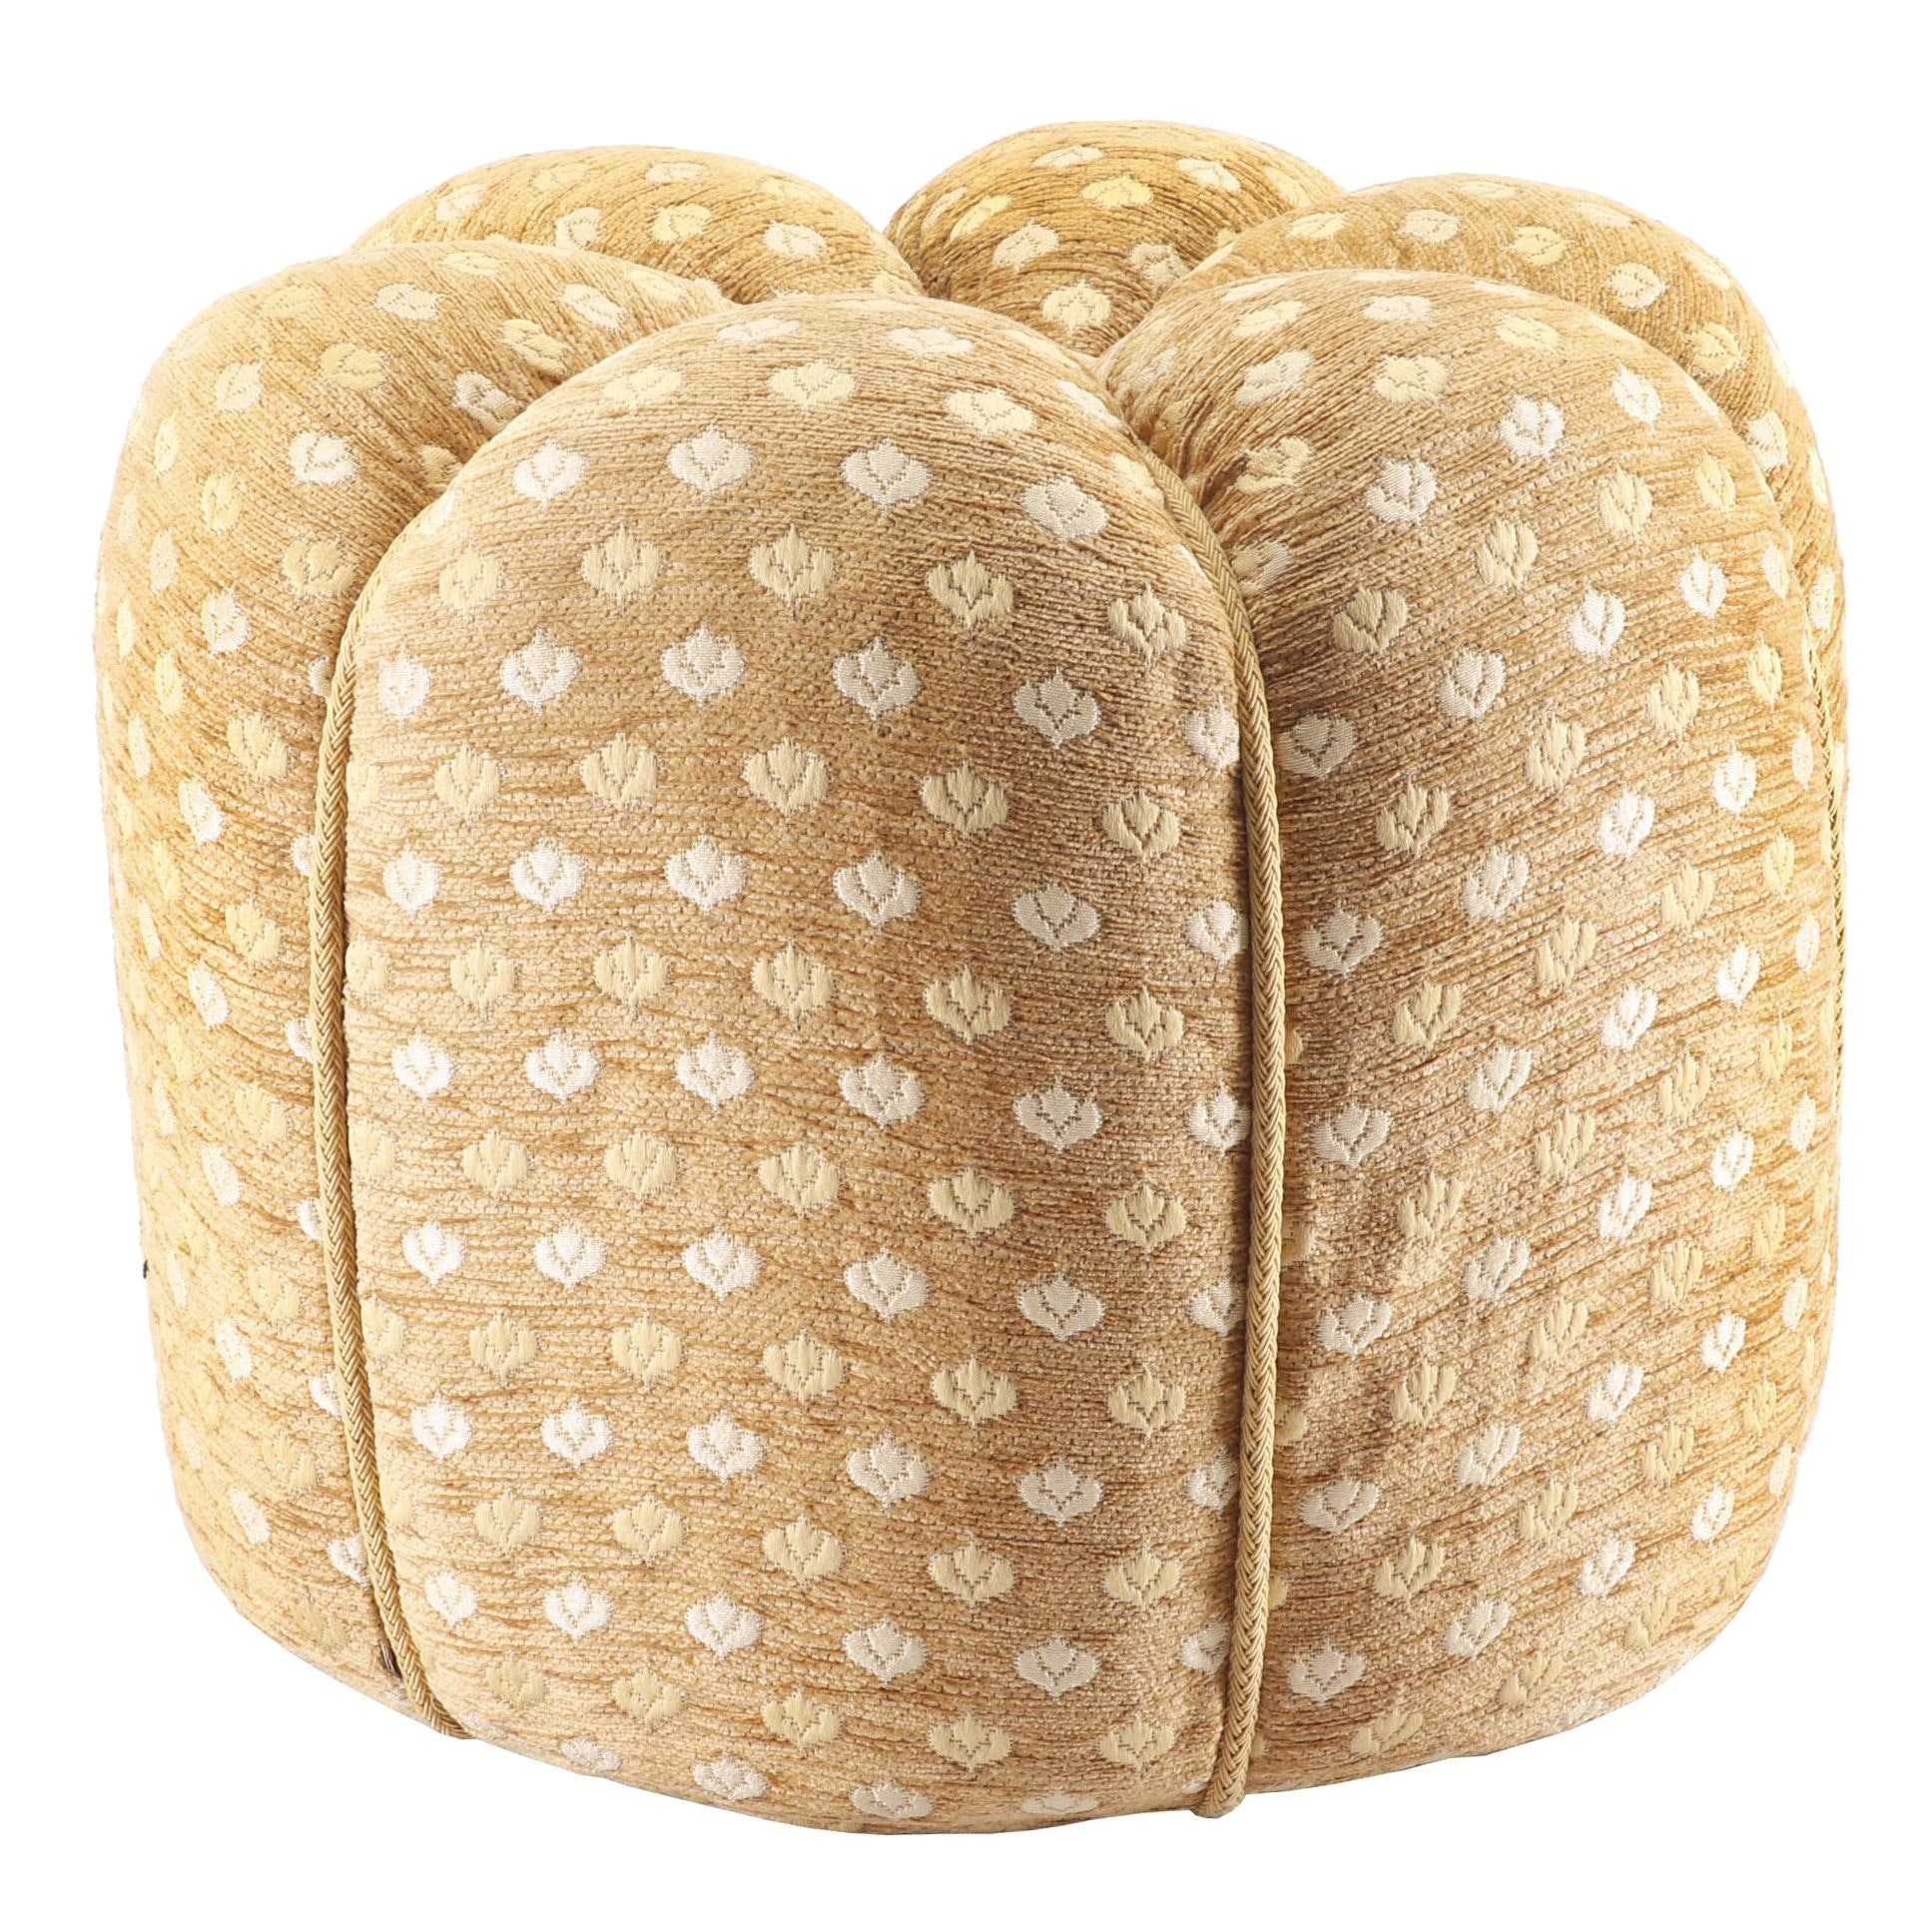 Embellished Chenille Pouf, 20th Century